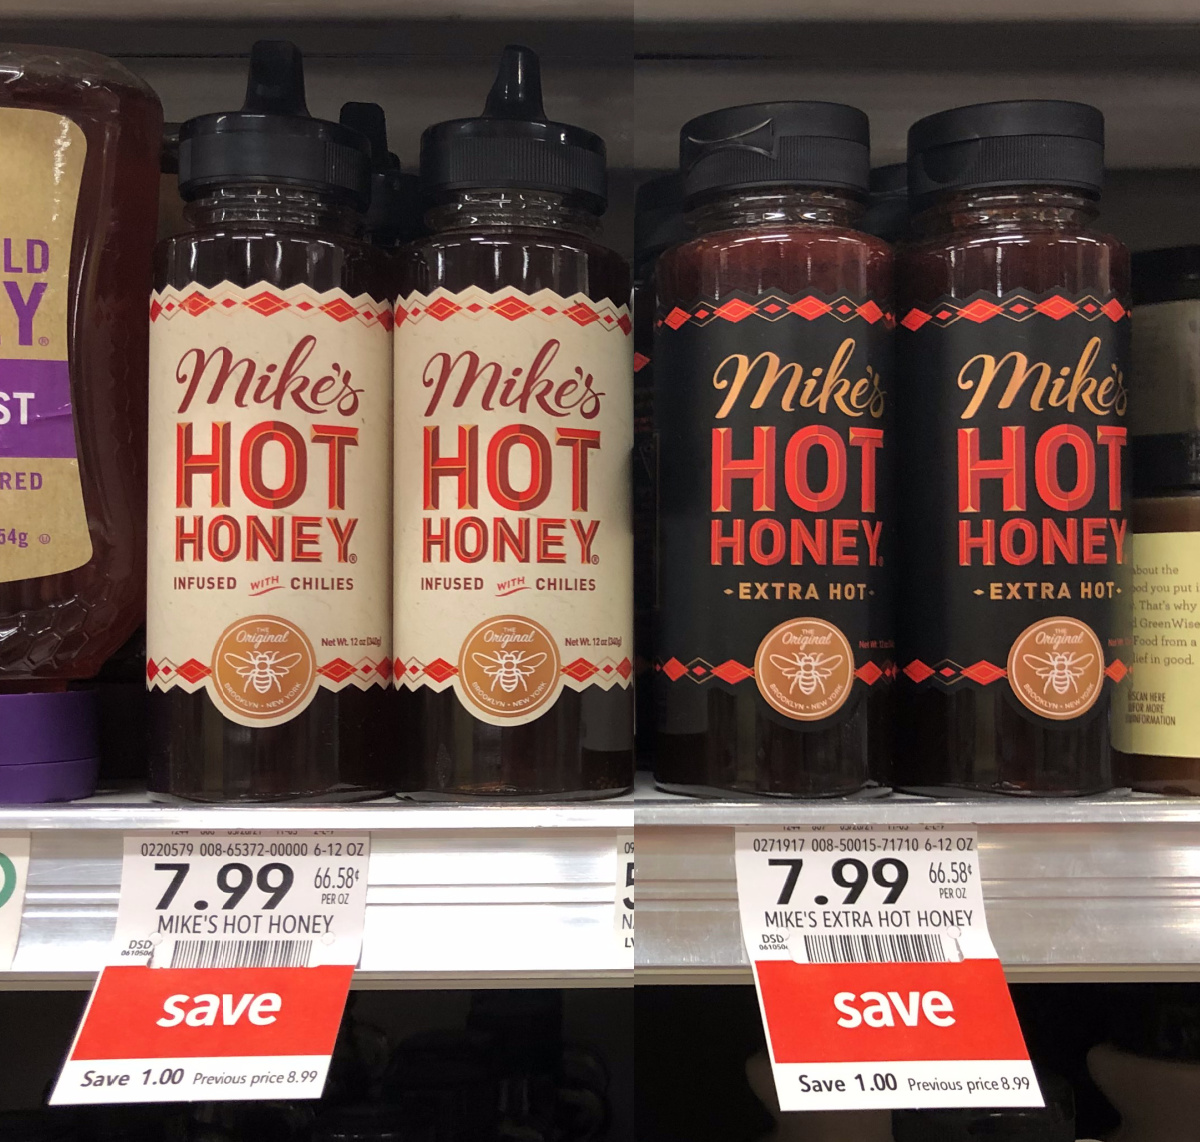 Grab A Bottle Of Mike's Hot Honey - Extra Hot For All Your Favorite Summer Meals on I Heart Publix